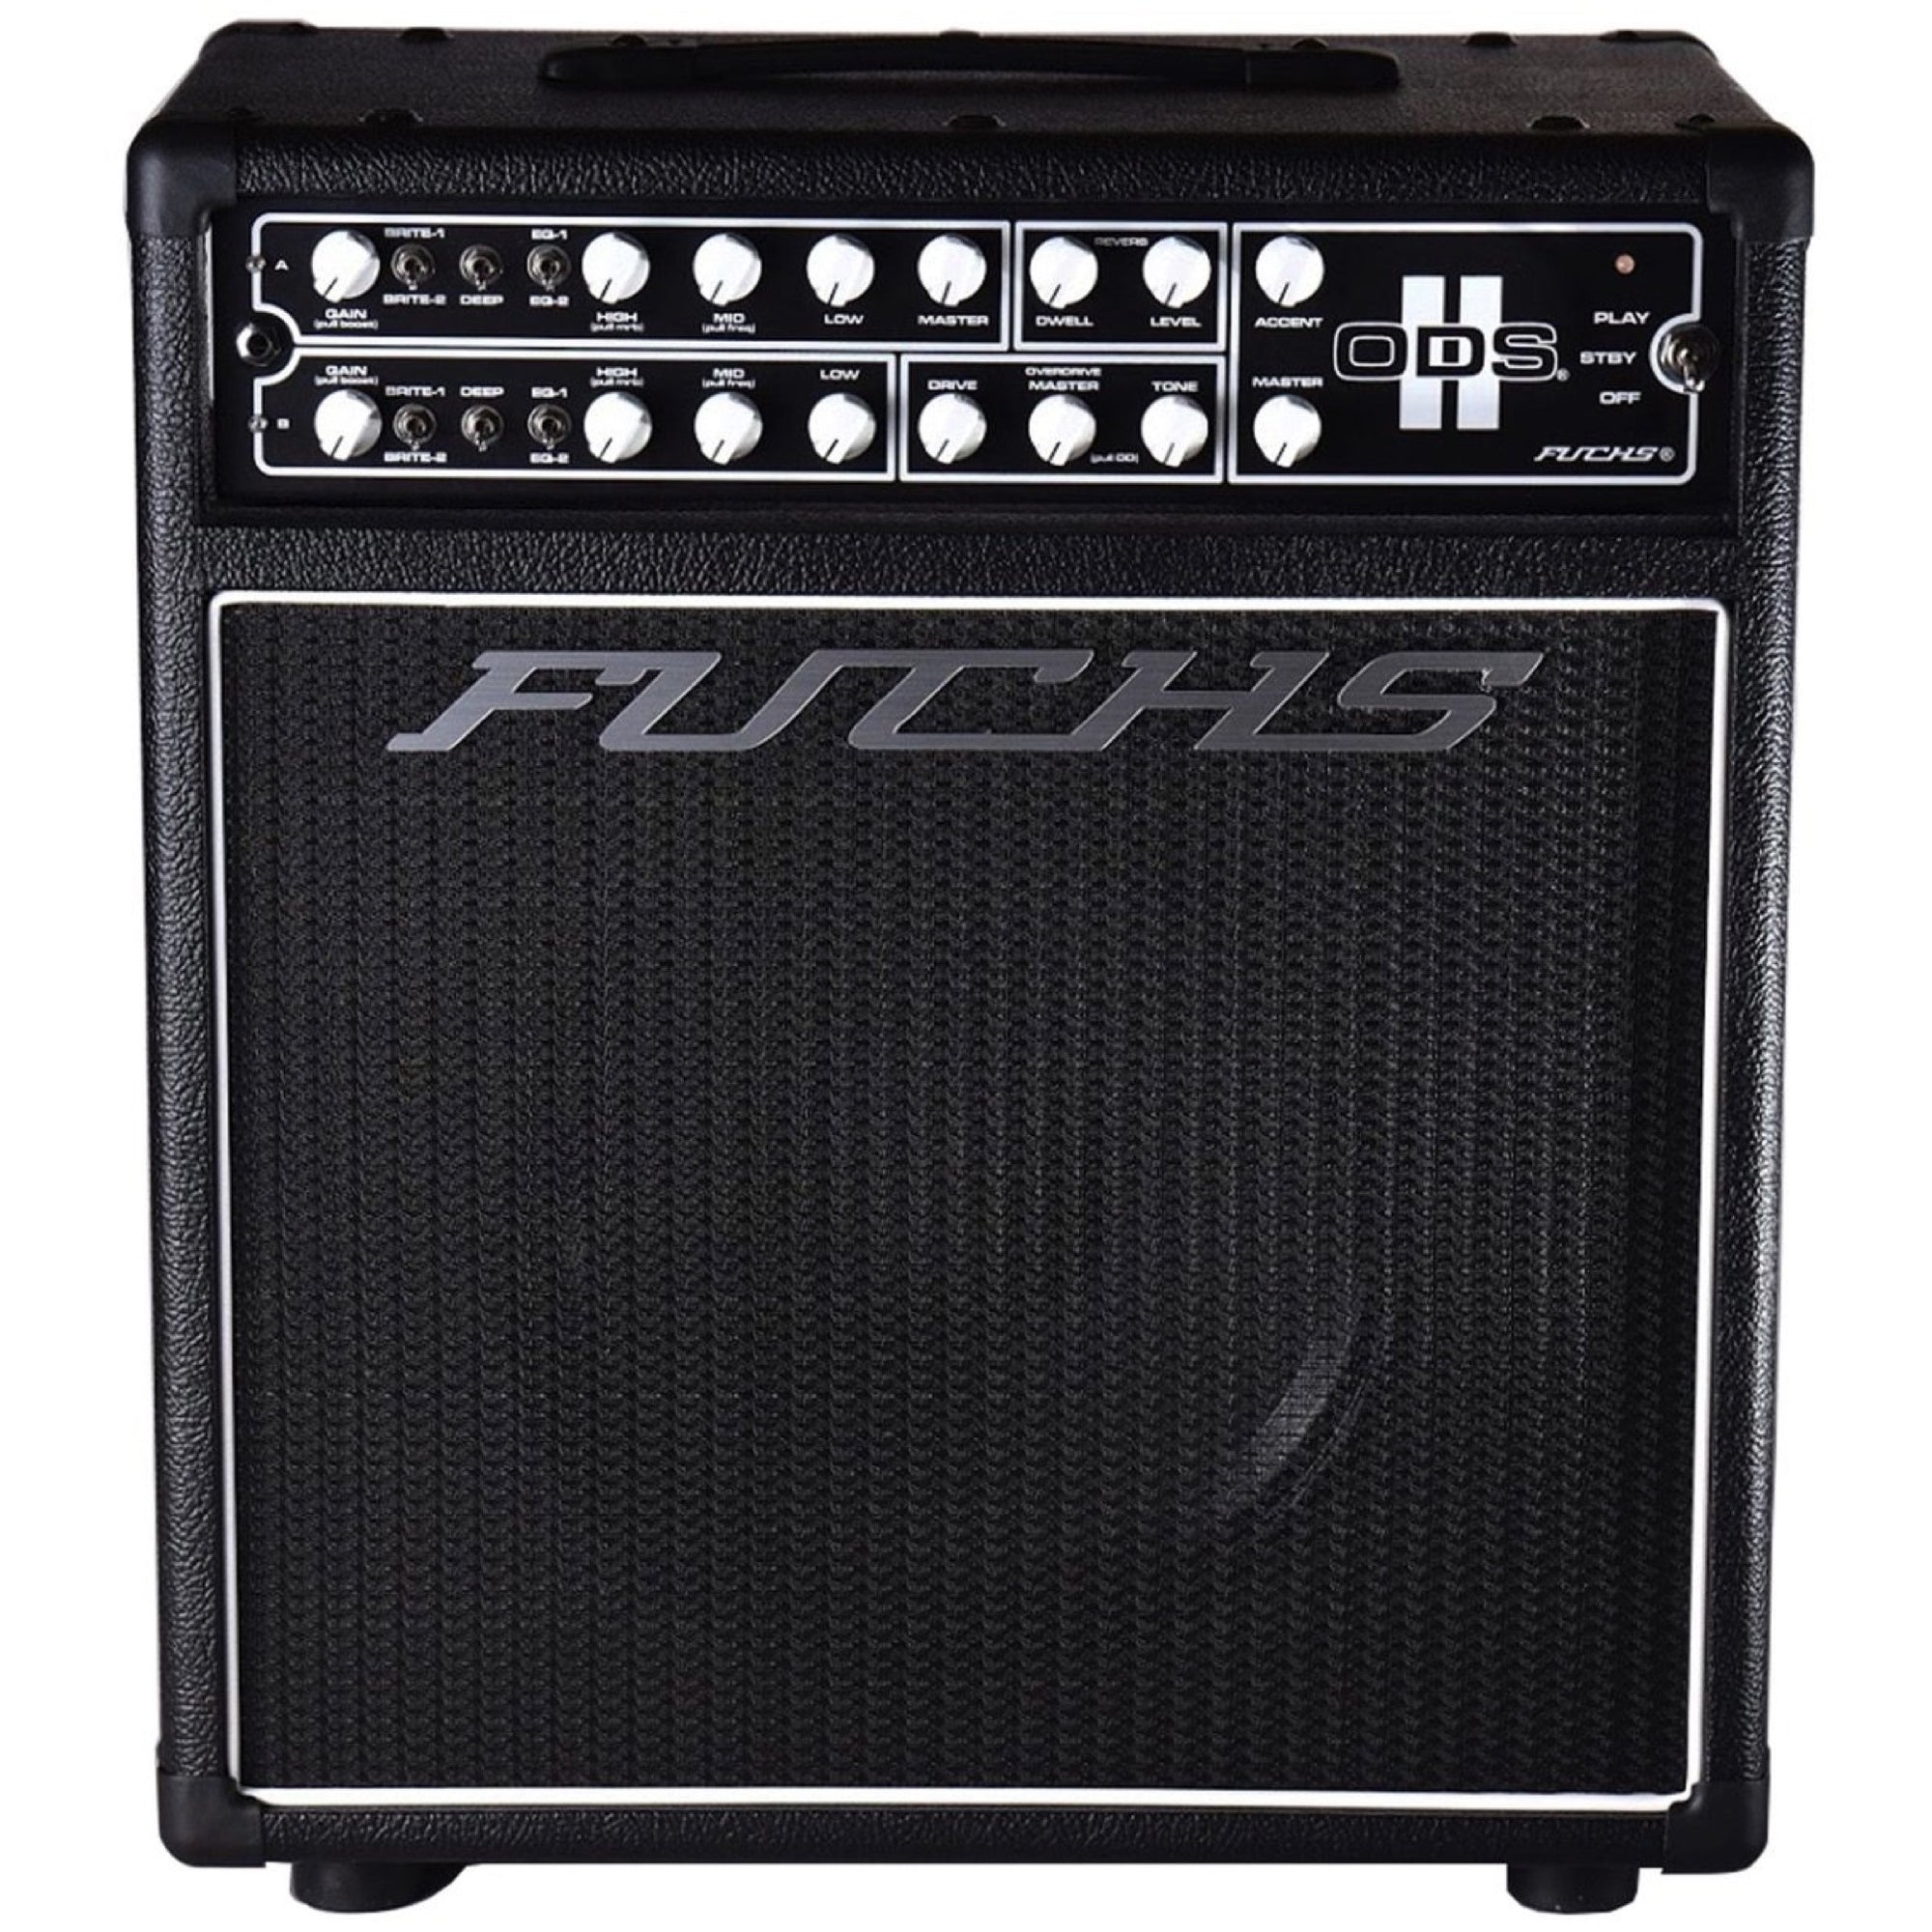 Fuchs ODS II Custom 2550 Guitar Combo Amplifier (50 Watts)